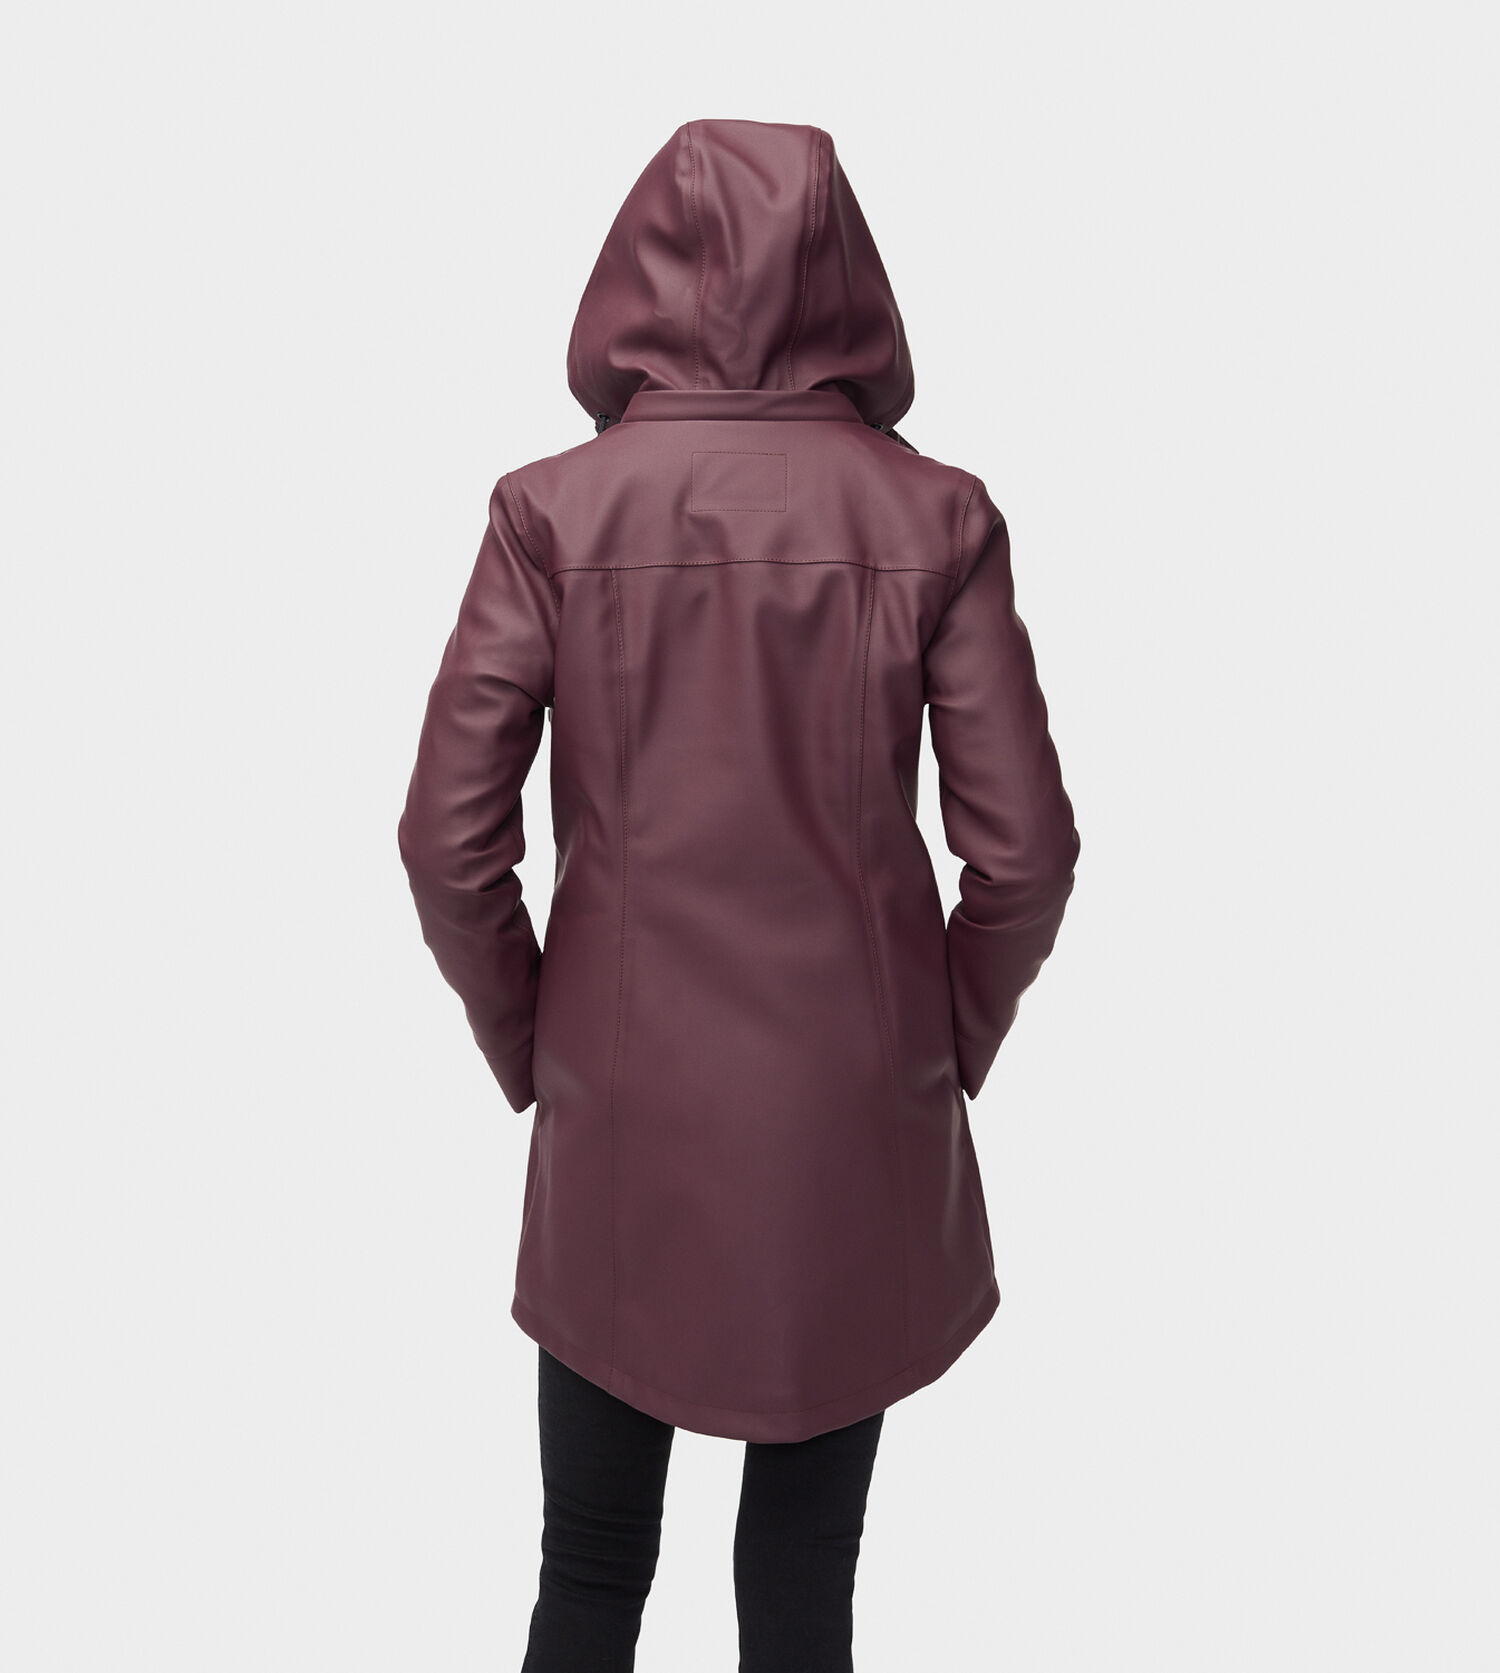 08c511d99f79 Zoom Rylie Rain Jacket - Image 2 of 4